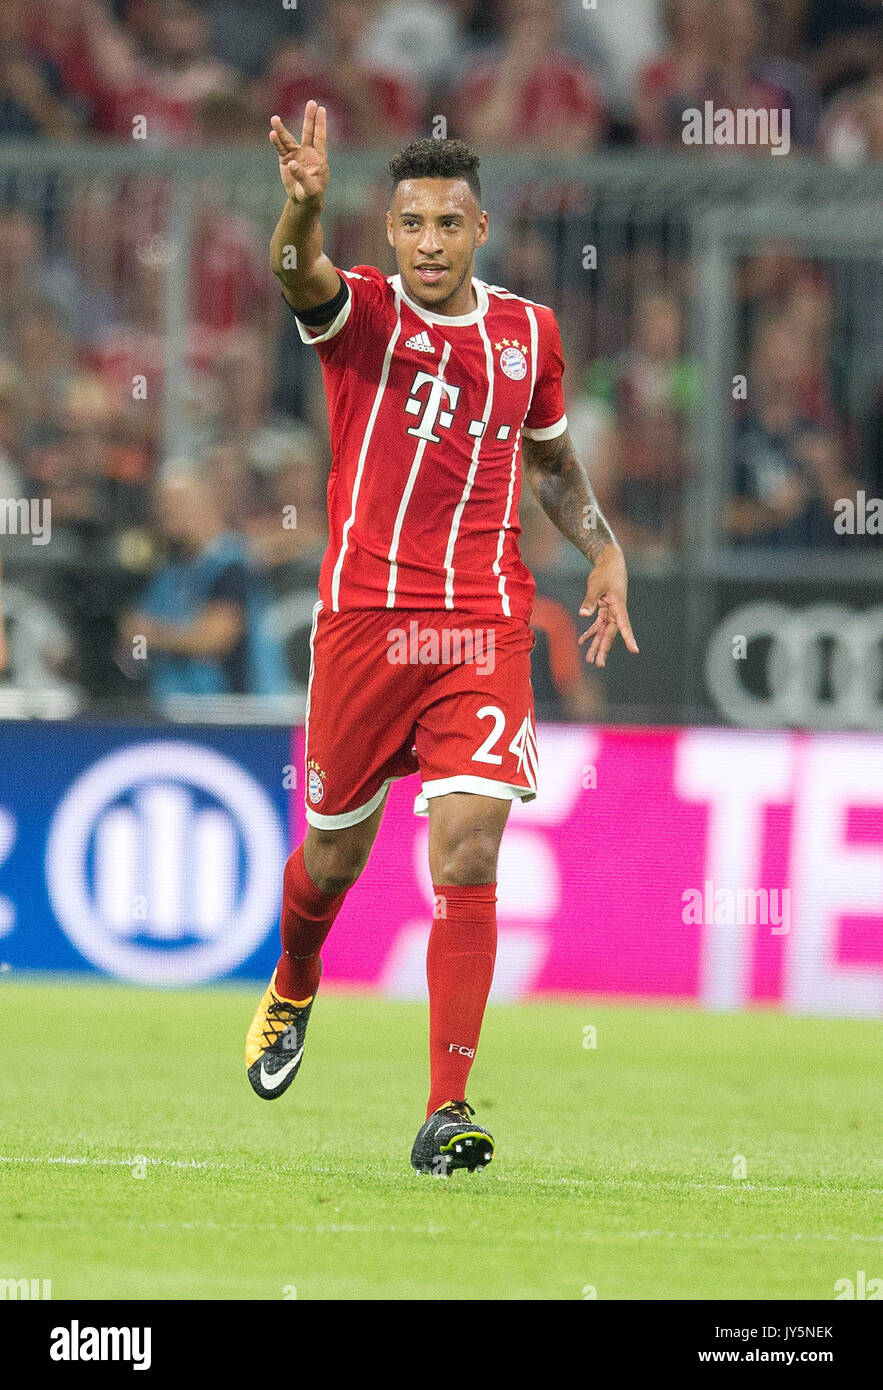 Deutschland. 18th Aug, 2017. Torjubel zum 2-0 durch Torschuetze Corentin TOLISSO (FC Bayern) GES/ Fussball/ 1. Bundesliga: FC Bayern Munich - Bayer 04 Leverkusen, 18.08.2017 -- Football/ Soccer 1st. German Bundesliga Division: Bavaria Munich vs Bayer 04 Leverkusen, Munich, August 18, 2017 | Verwendung weltweit Credit: dpa/Alamy Live News - Stock Image